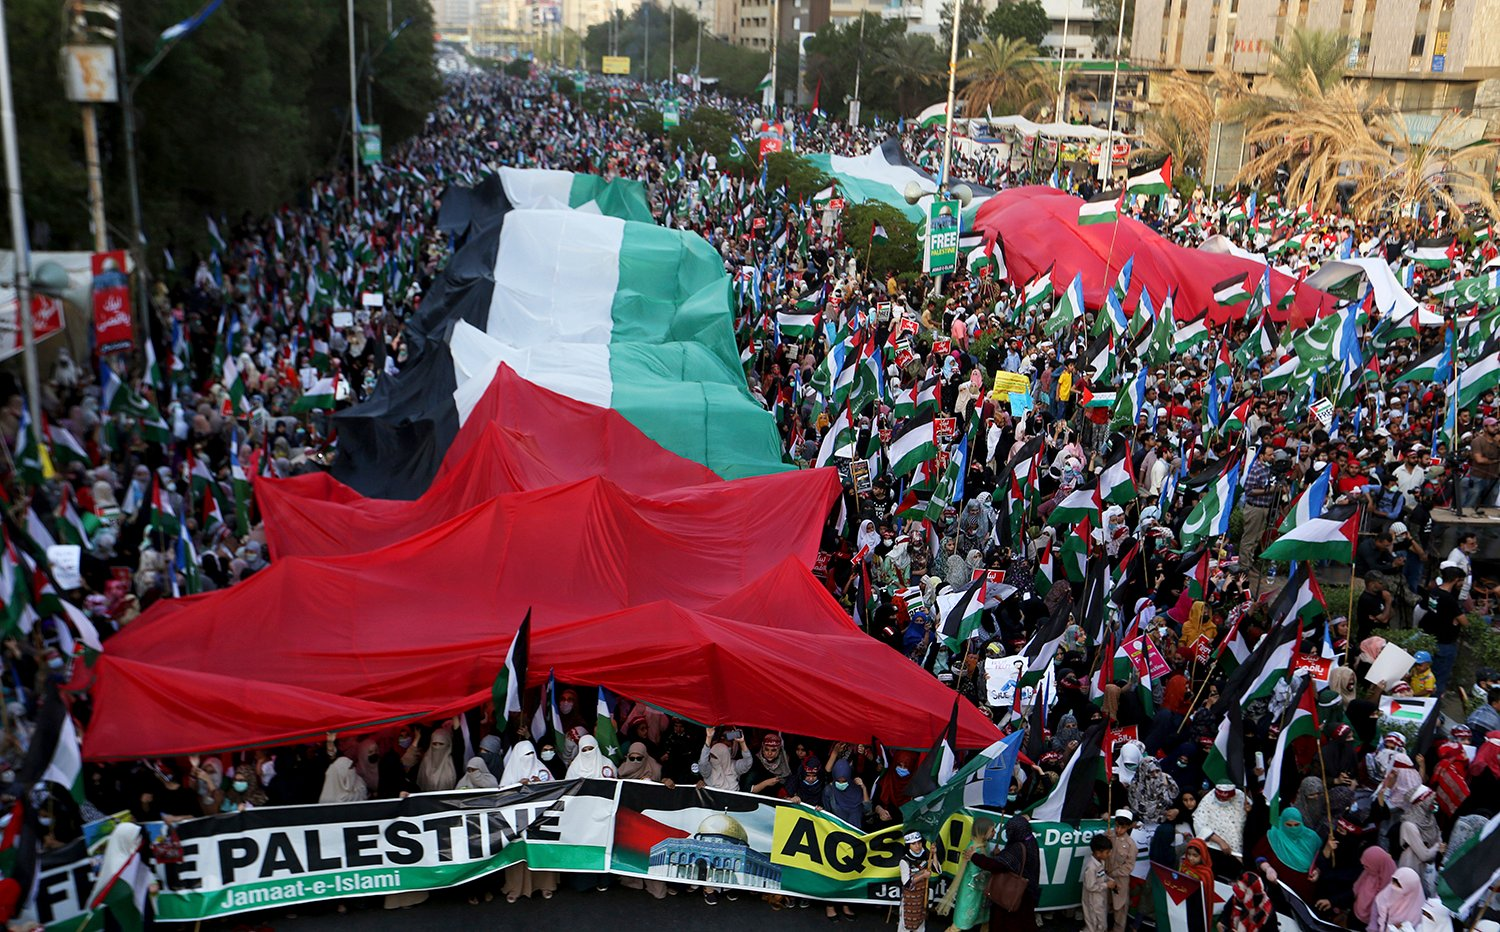 Supporters of the Pakistani religious group, Jamaat-e-Islami, display huge Palestinians flags during a rally in support of Palestinians, in Karachi, Pakistan, Sunday, May 23, 2021. (AP Photo/Fareed Khan)